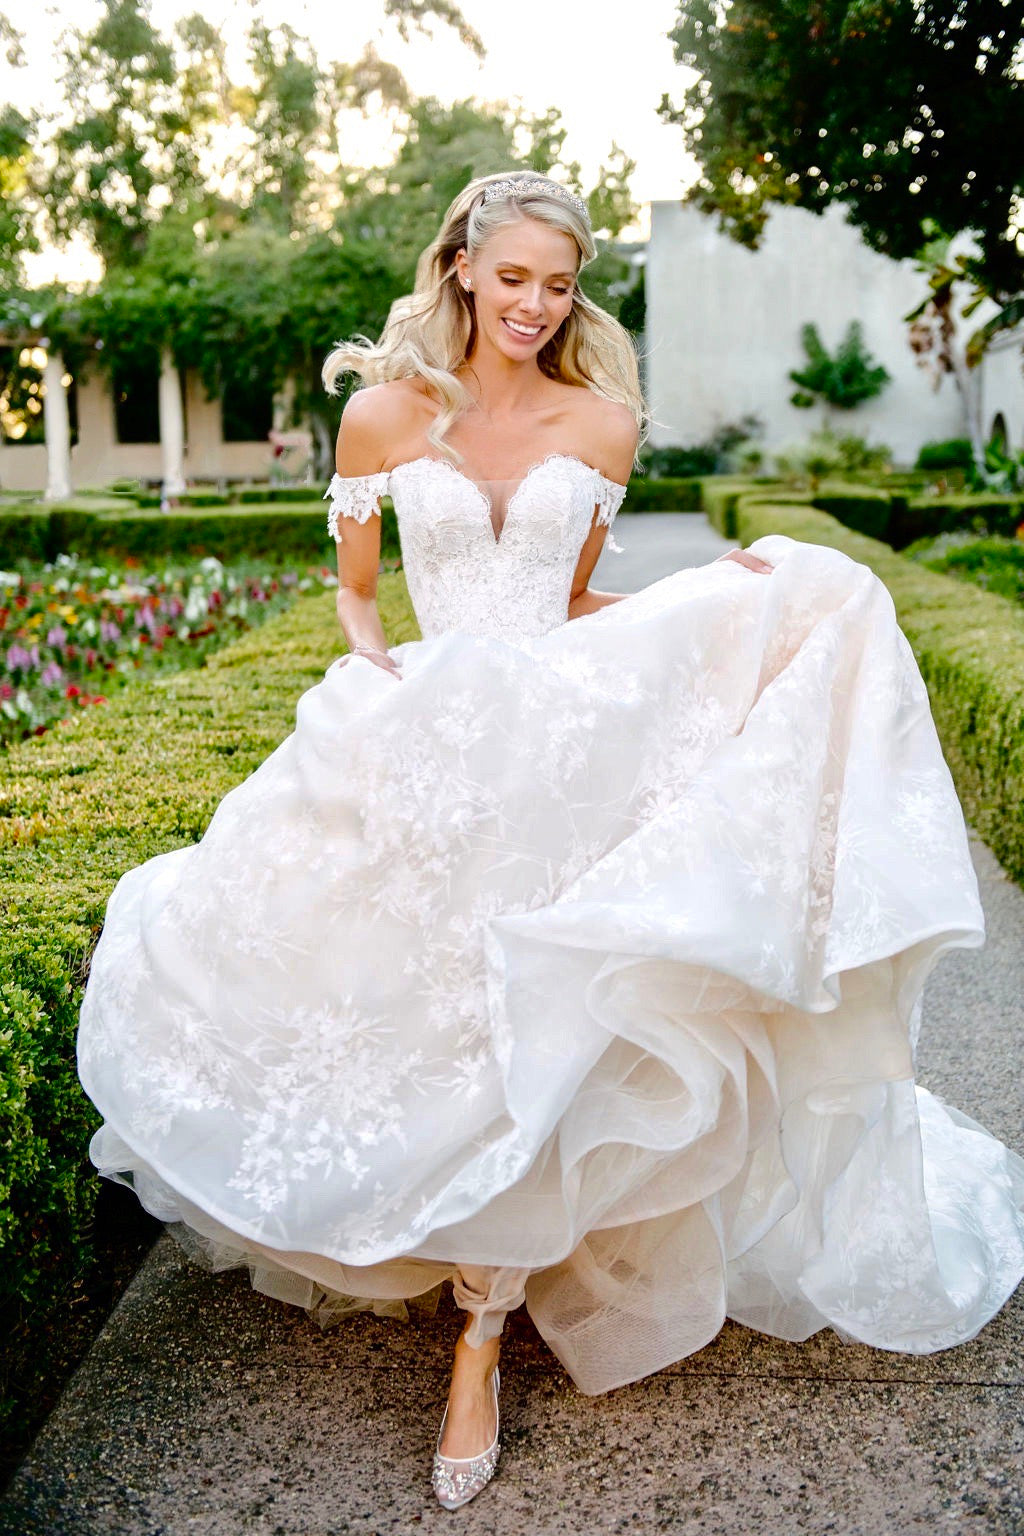 bella belle real brides in monique lhuillier lace wedding dress